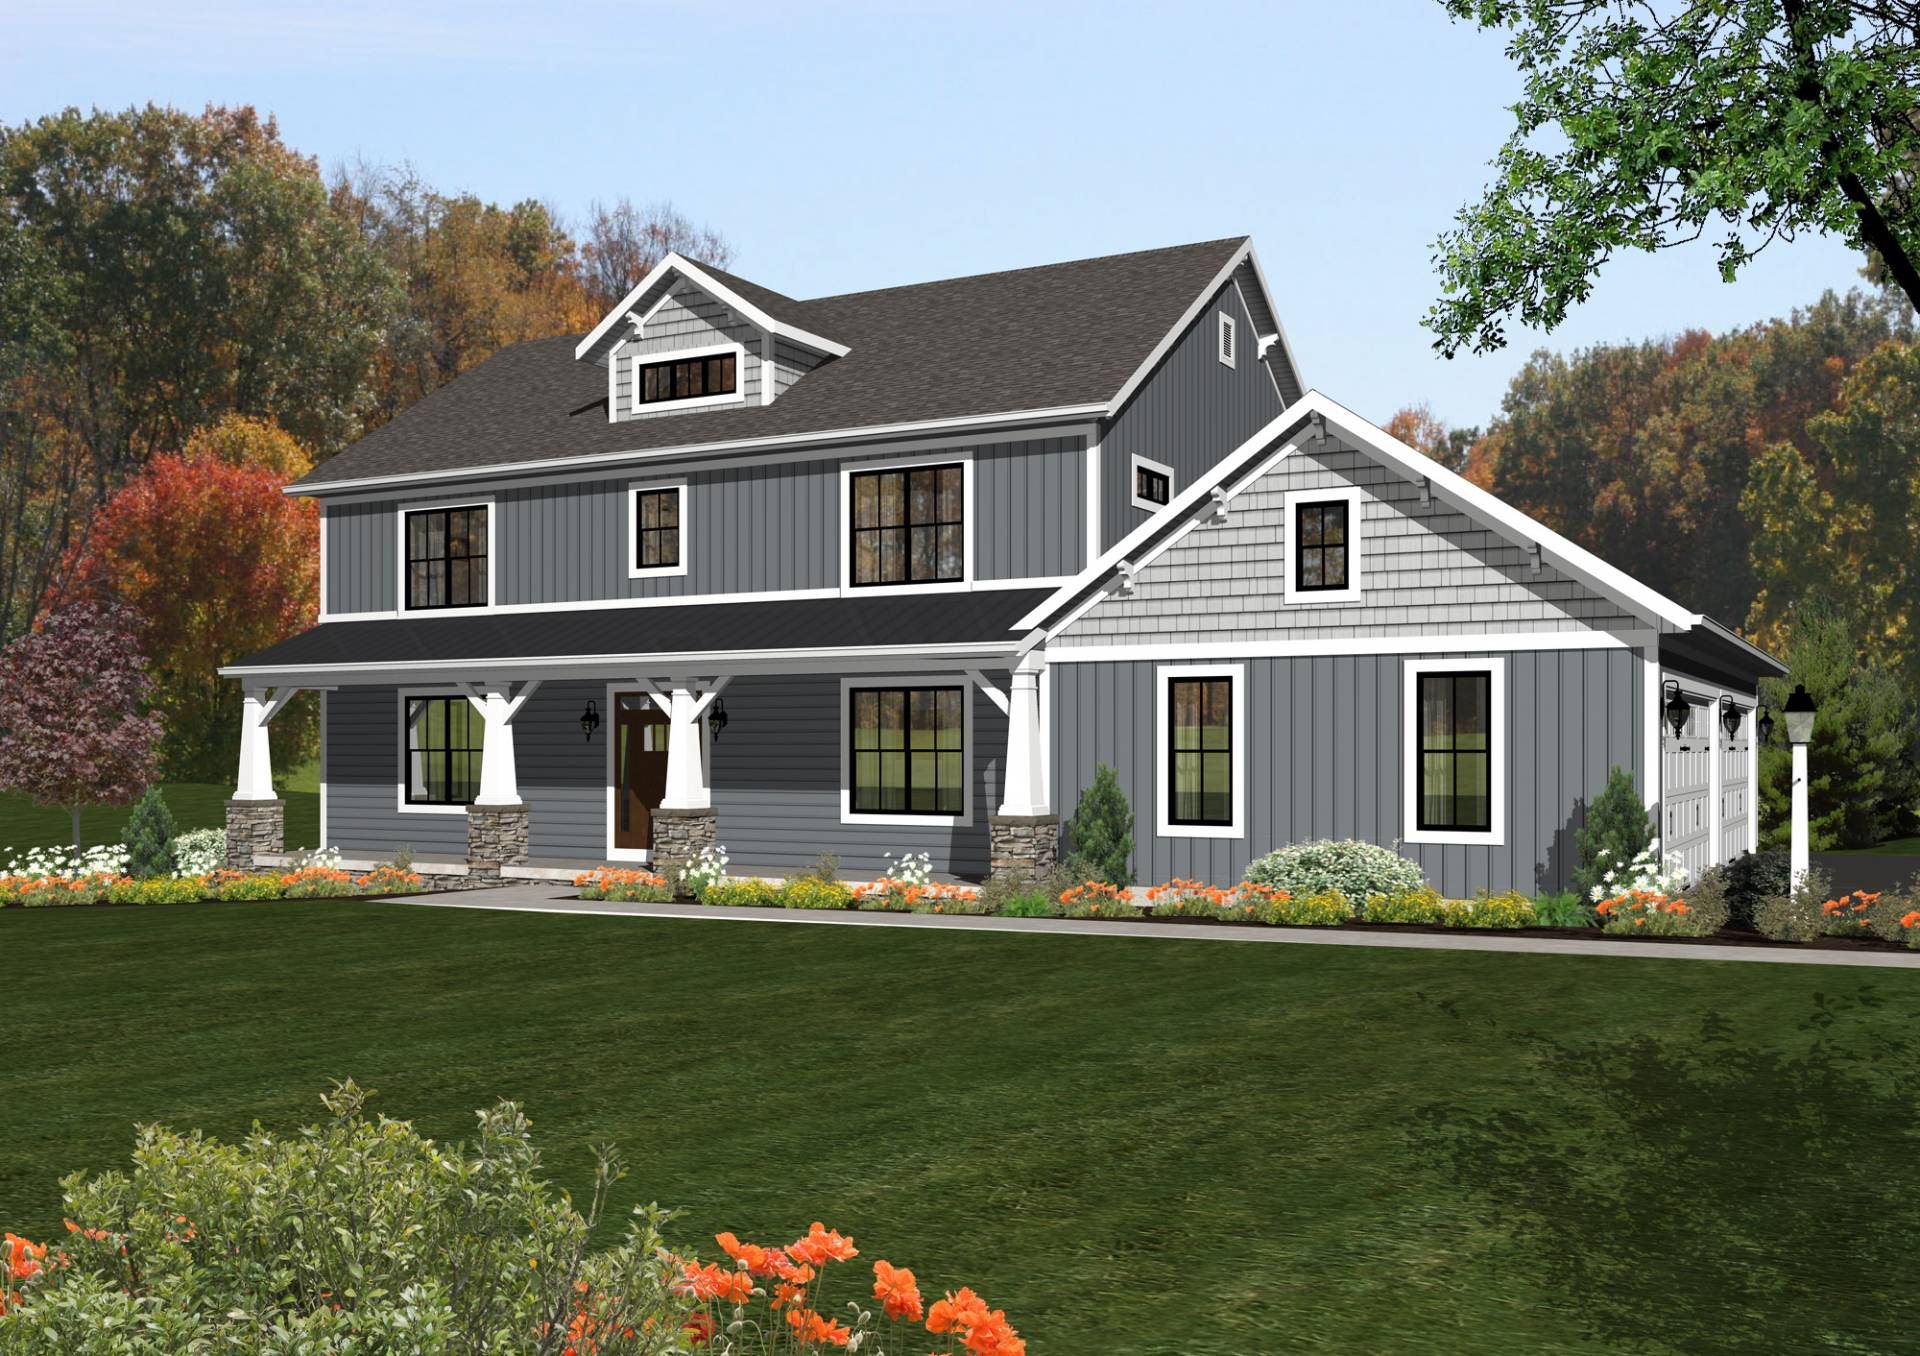 28 Quality Home Design Drafting Service Before Amp After Gallery Galleries Quality